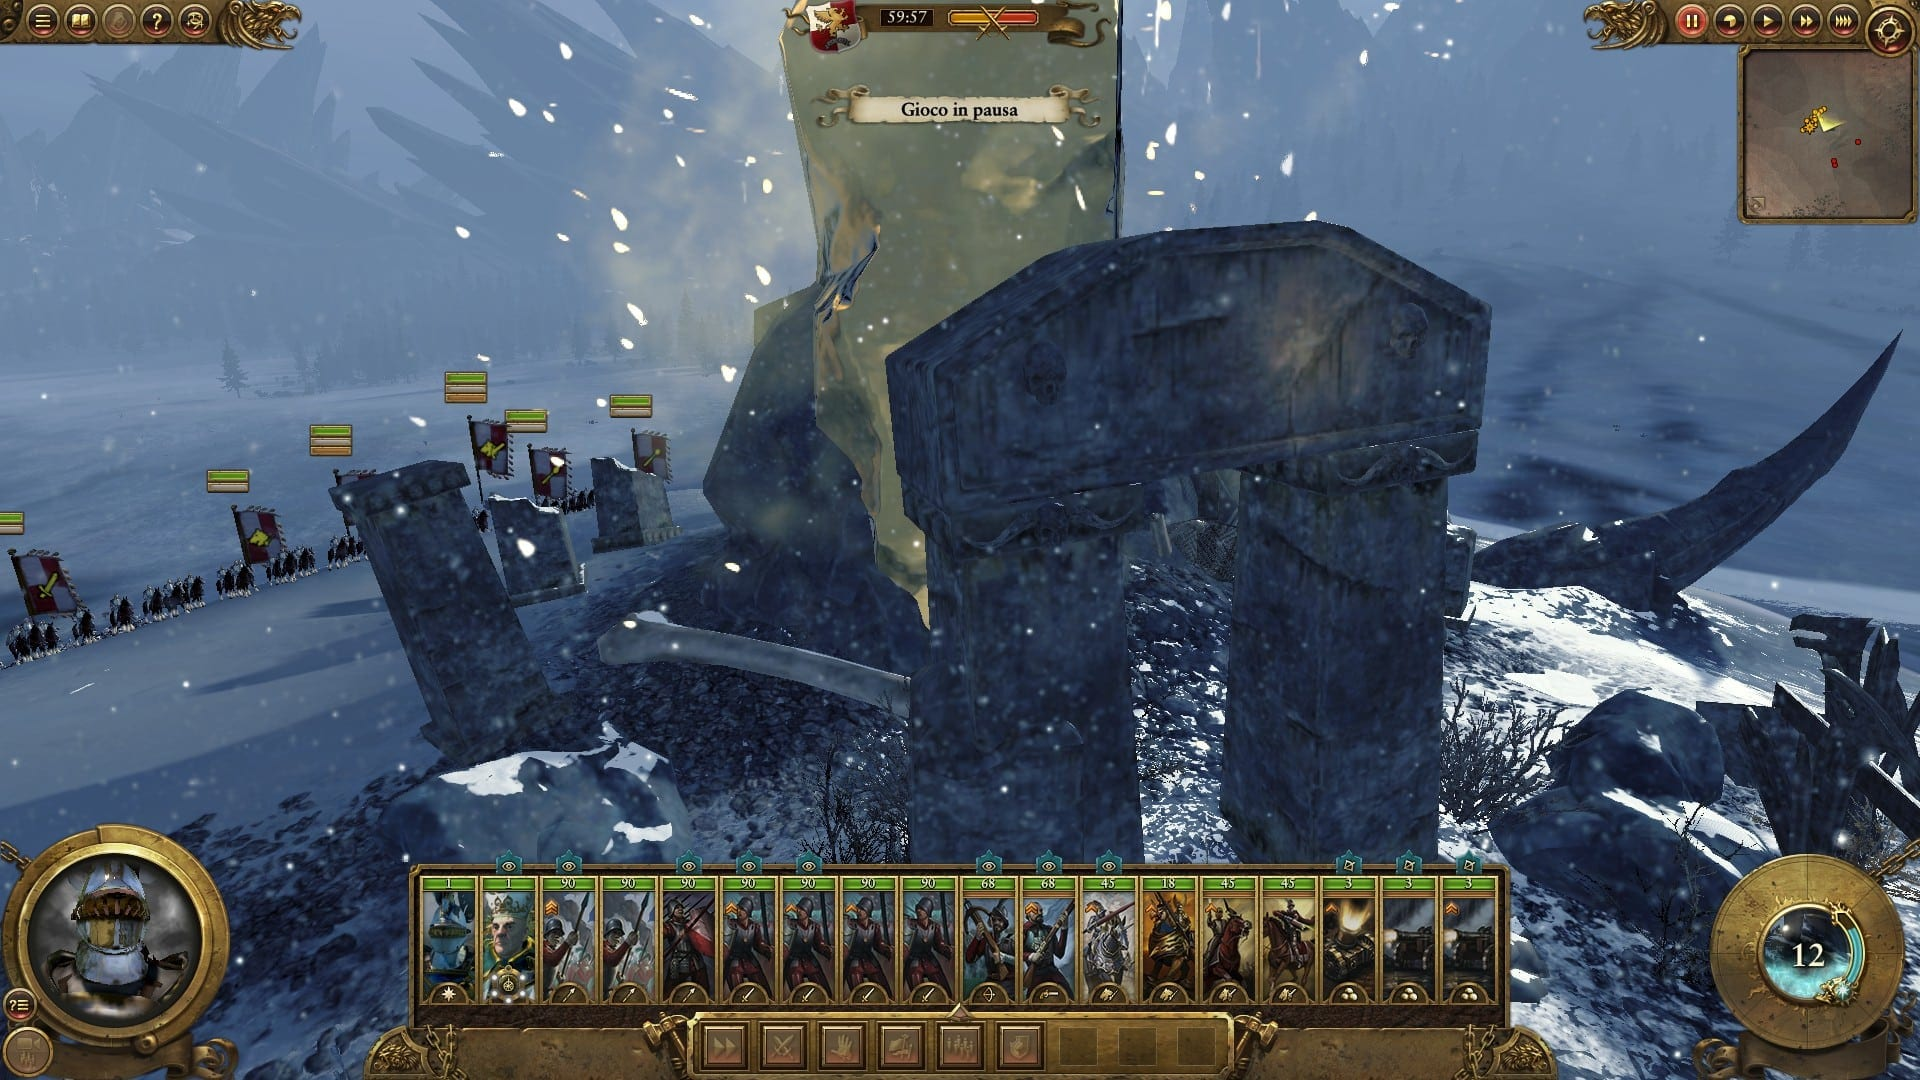 pc gaming.it total war warhammer recensione 2 8 - Total War: Warhammer- Recensione